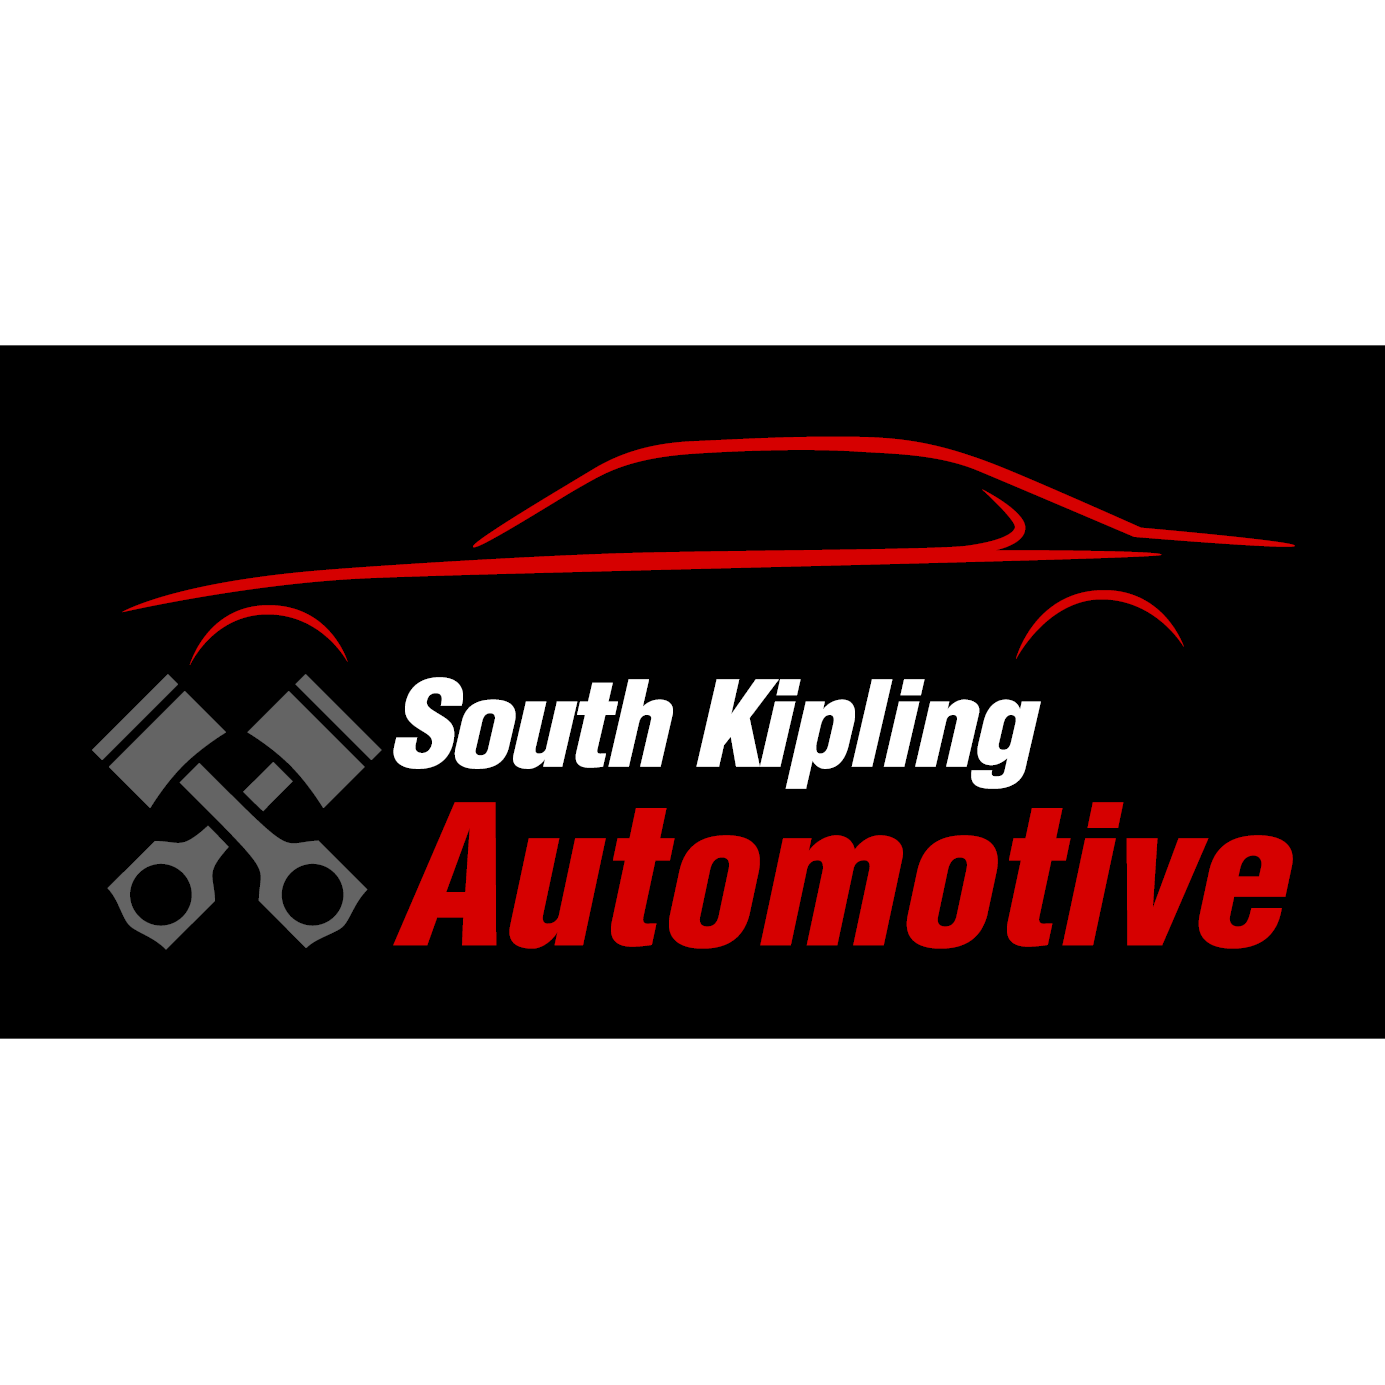 South Kipling Automotive